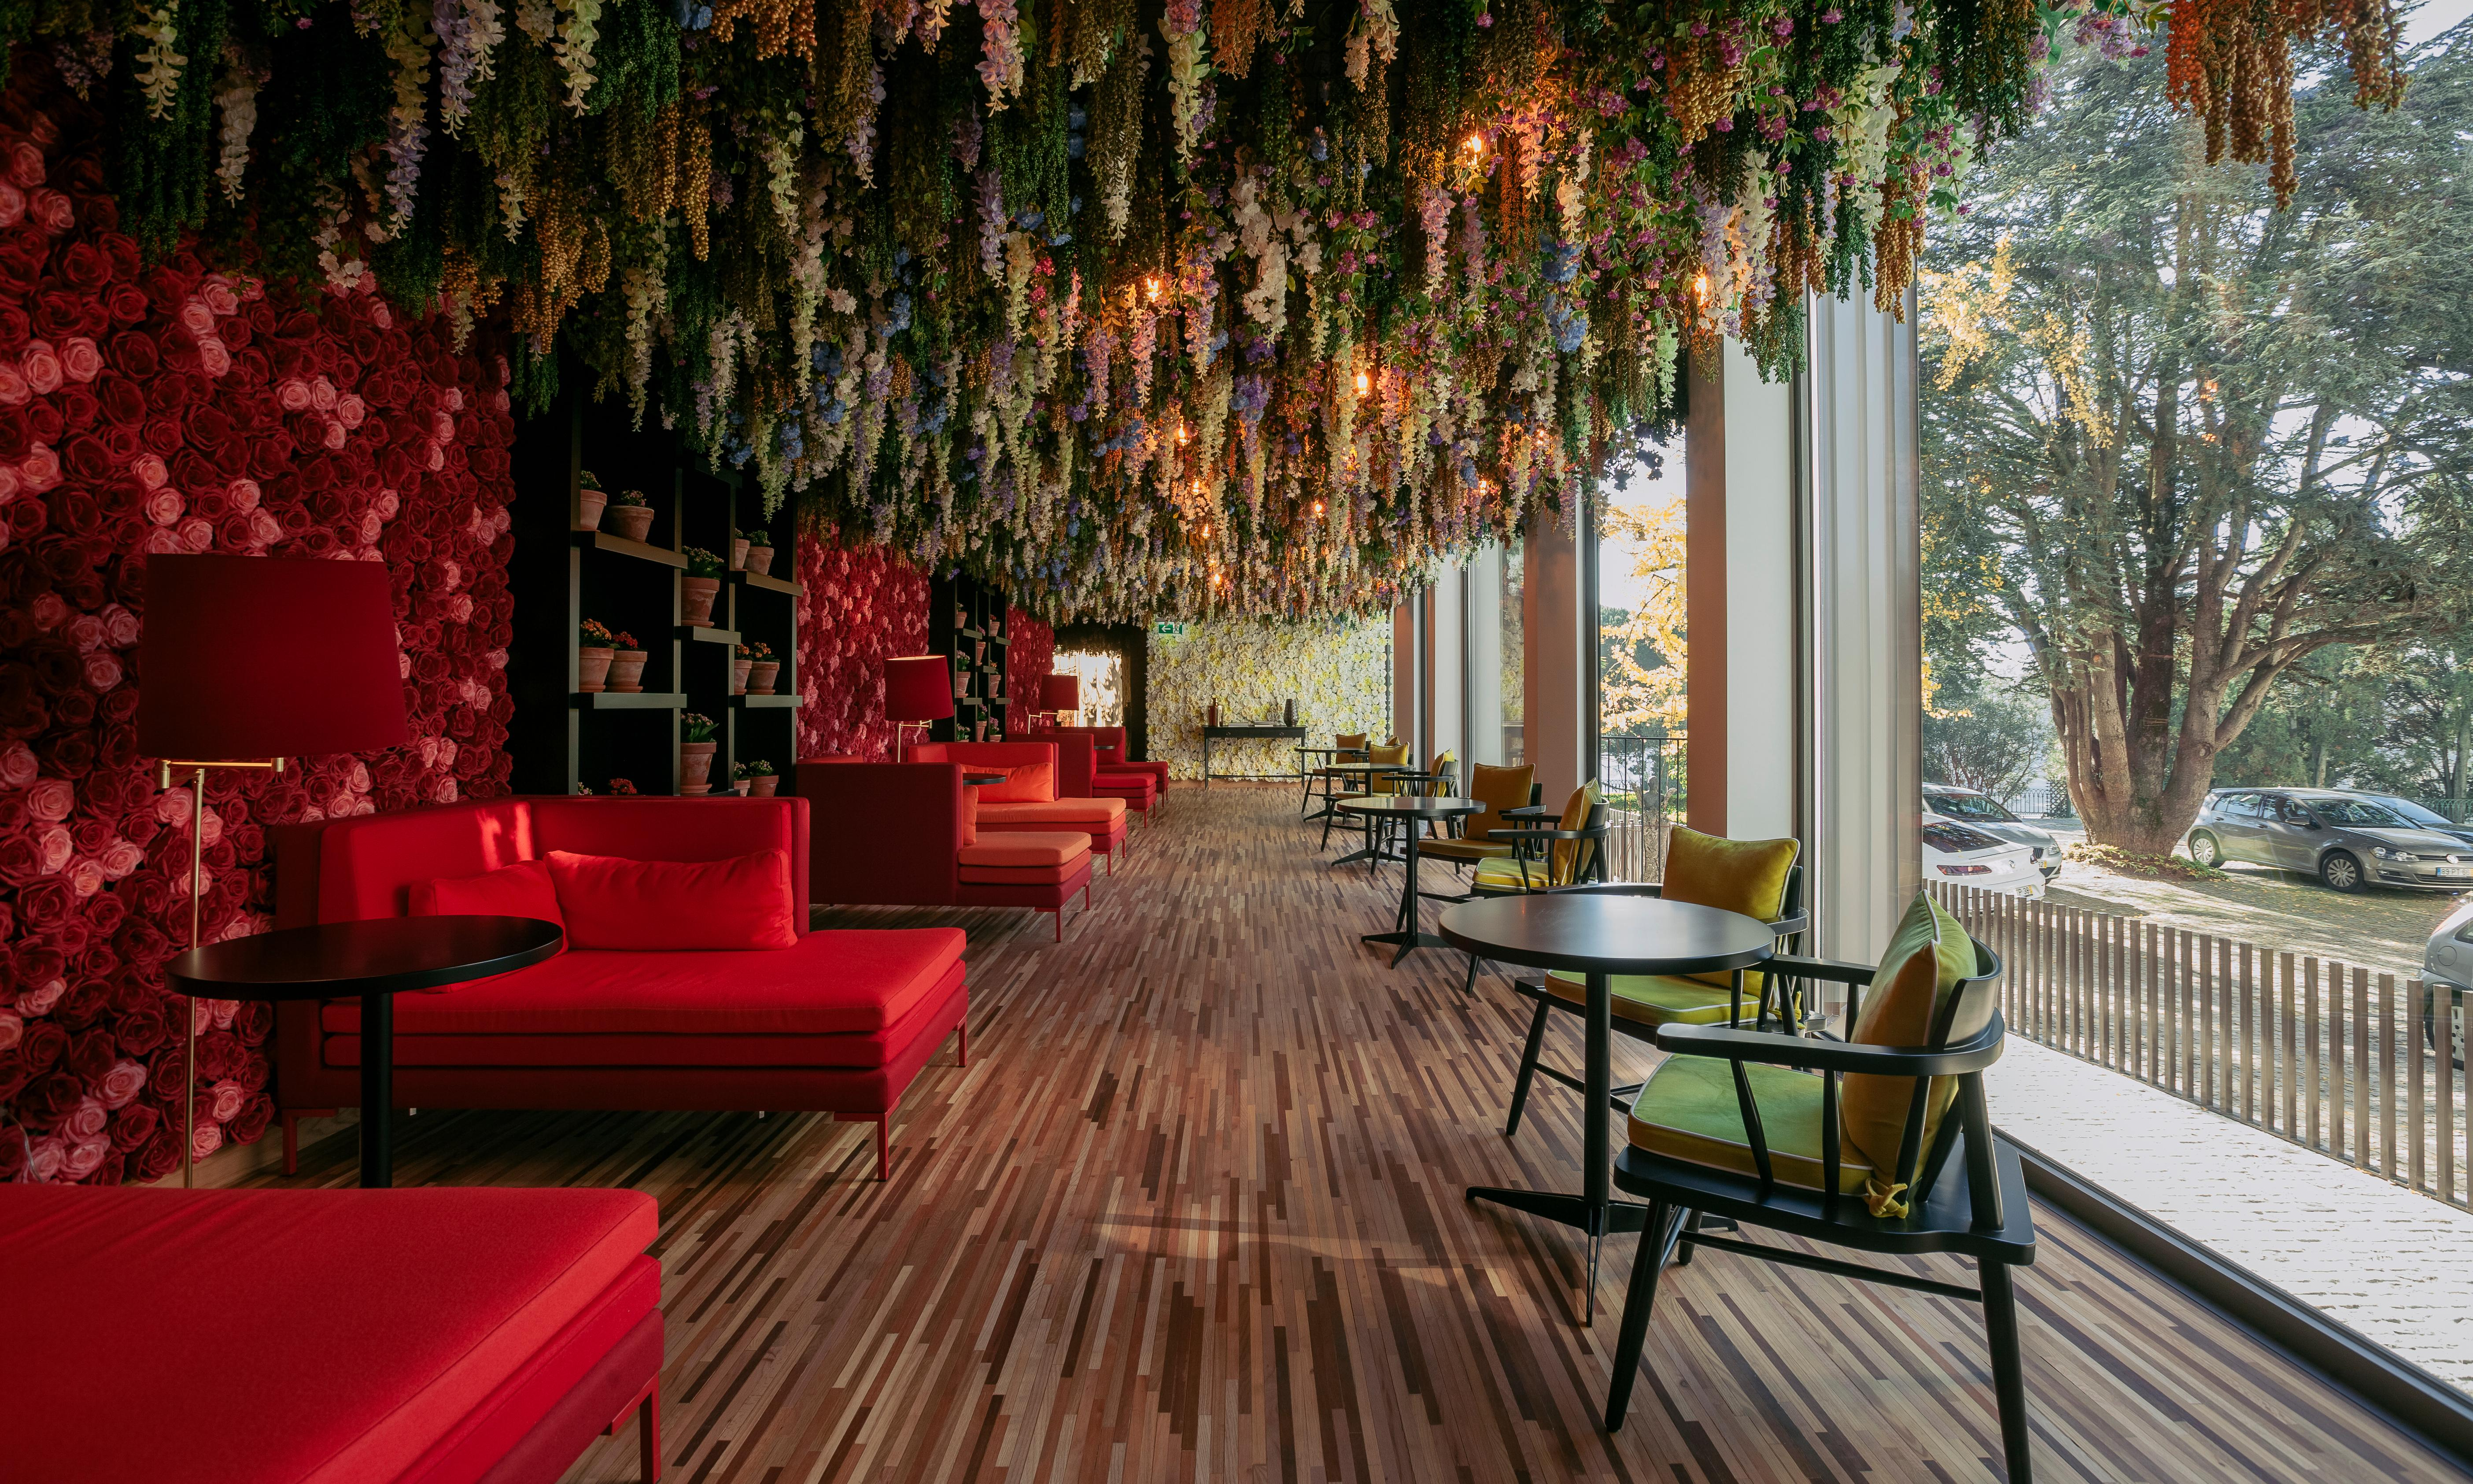 20 of Europe's best new hotels and hostels for 2018